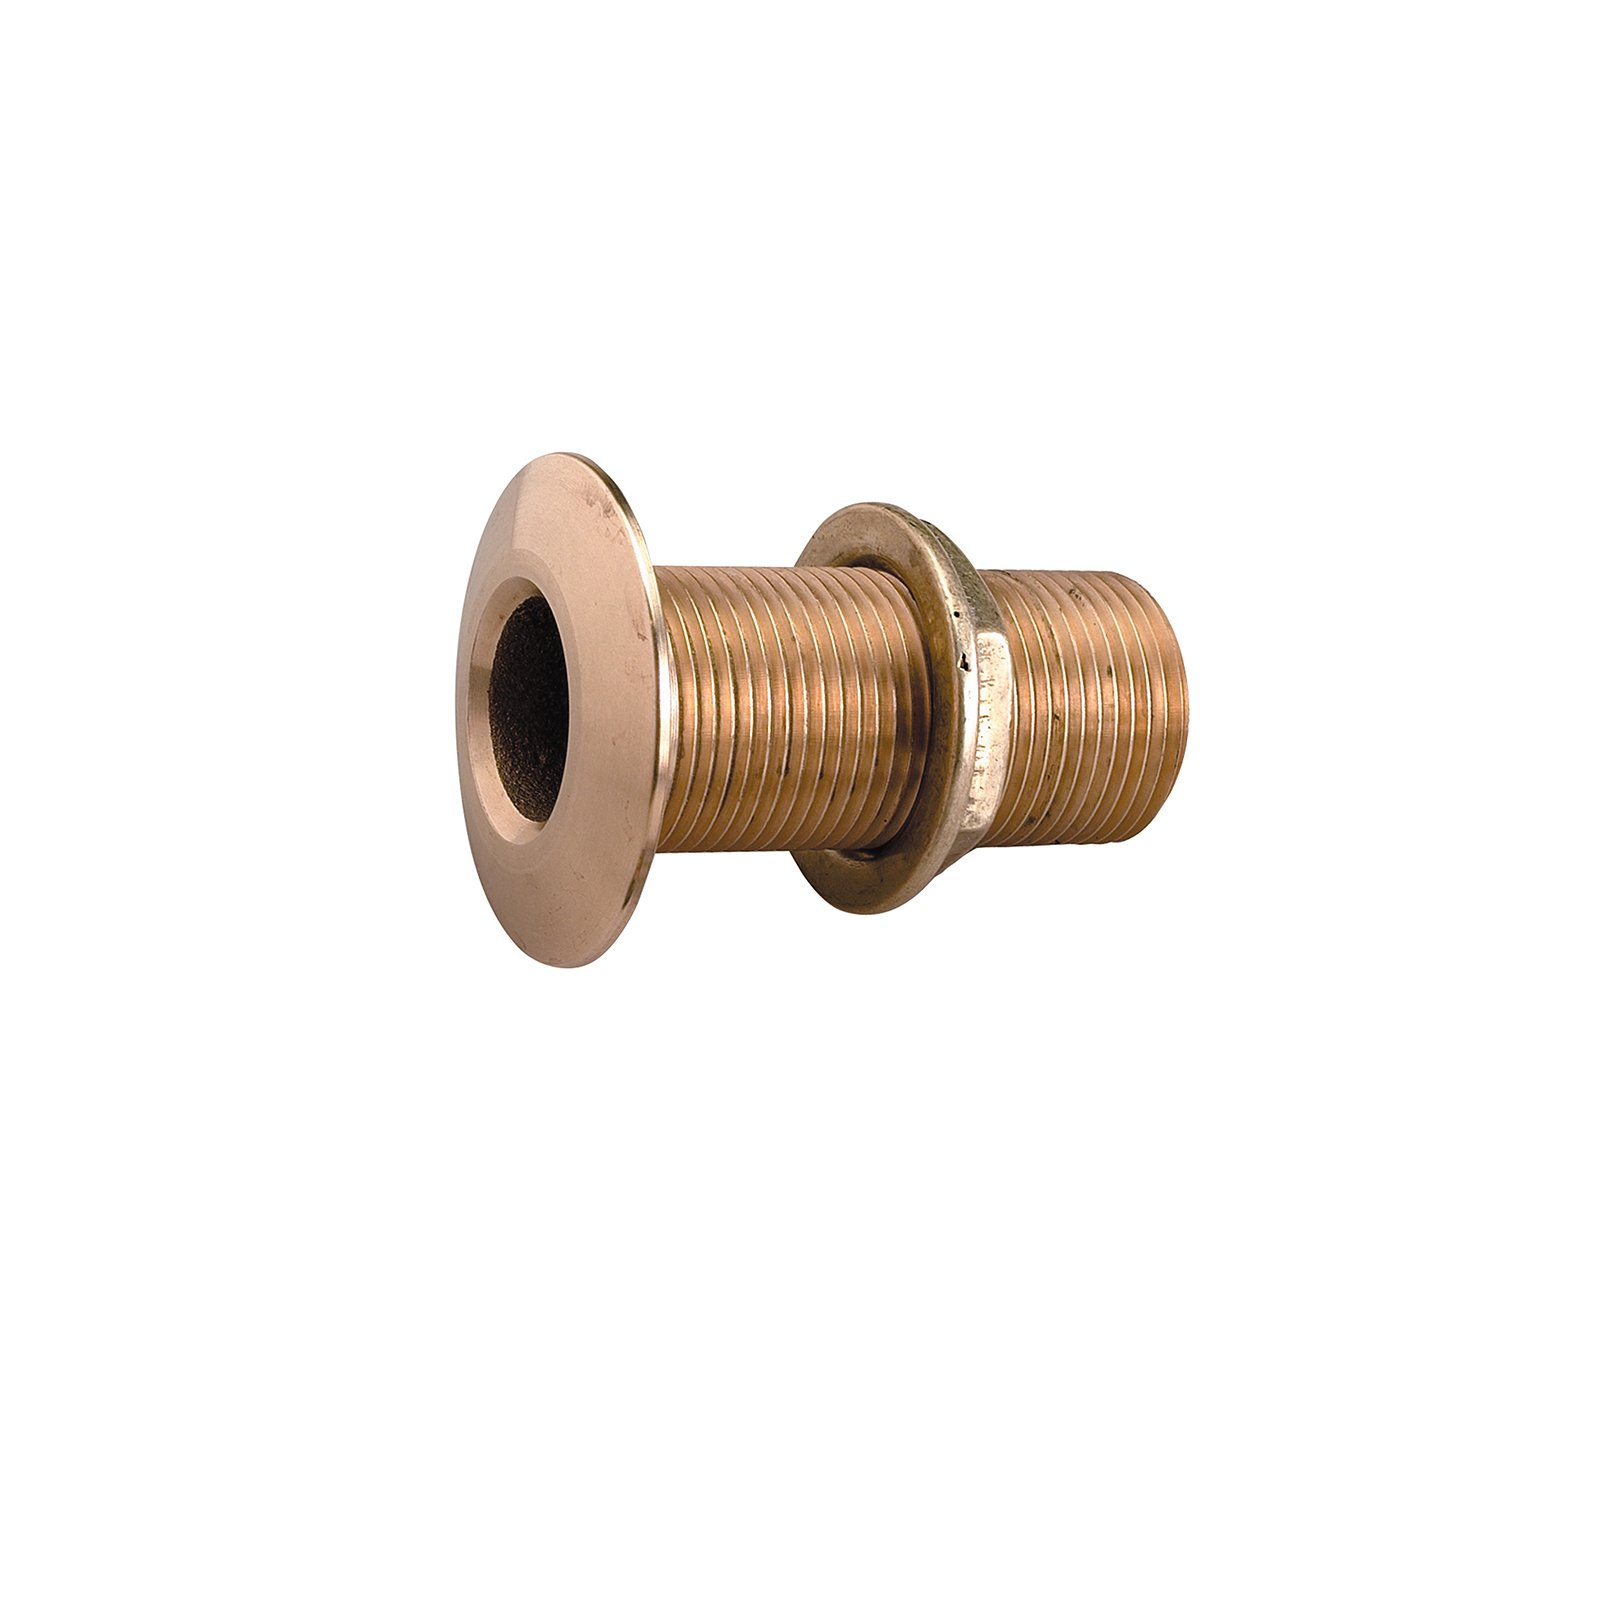 Perko 0322DP7PLB Thru-Hull Connection for Use with Pipe - 1-1/4 by Perko